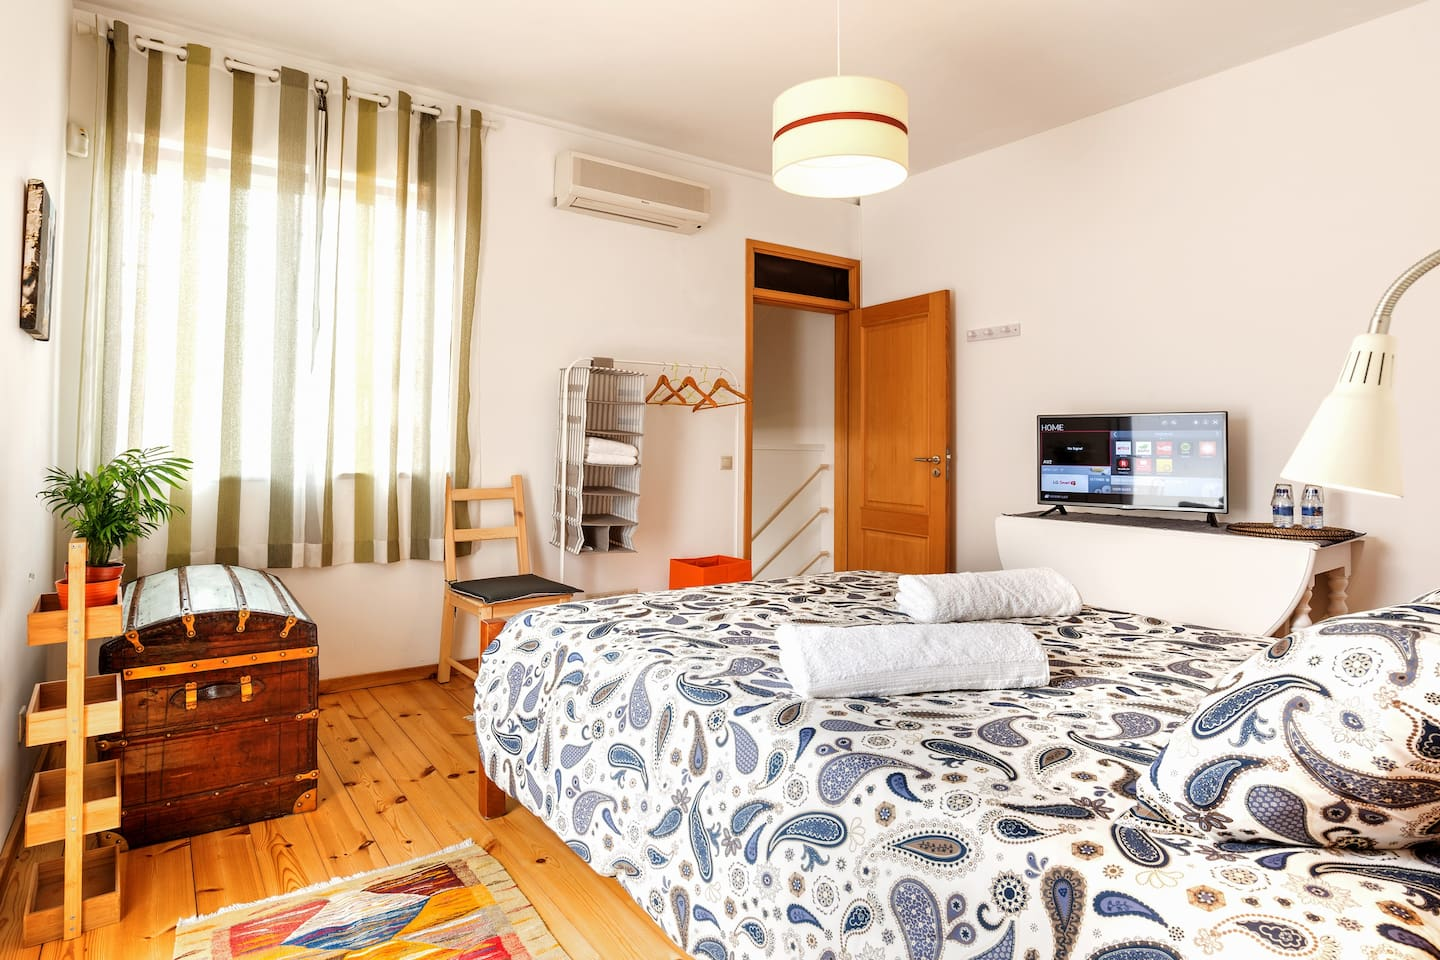 Air conditioning bedroom with wooden floor and smart TV (internet/netflix).